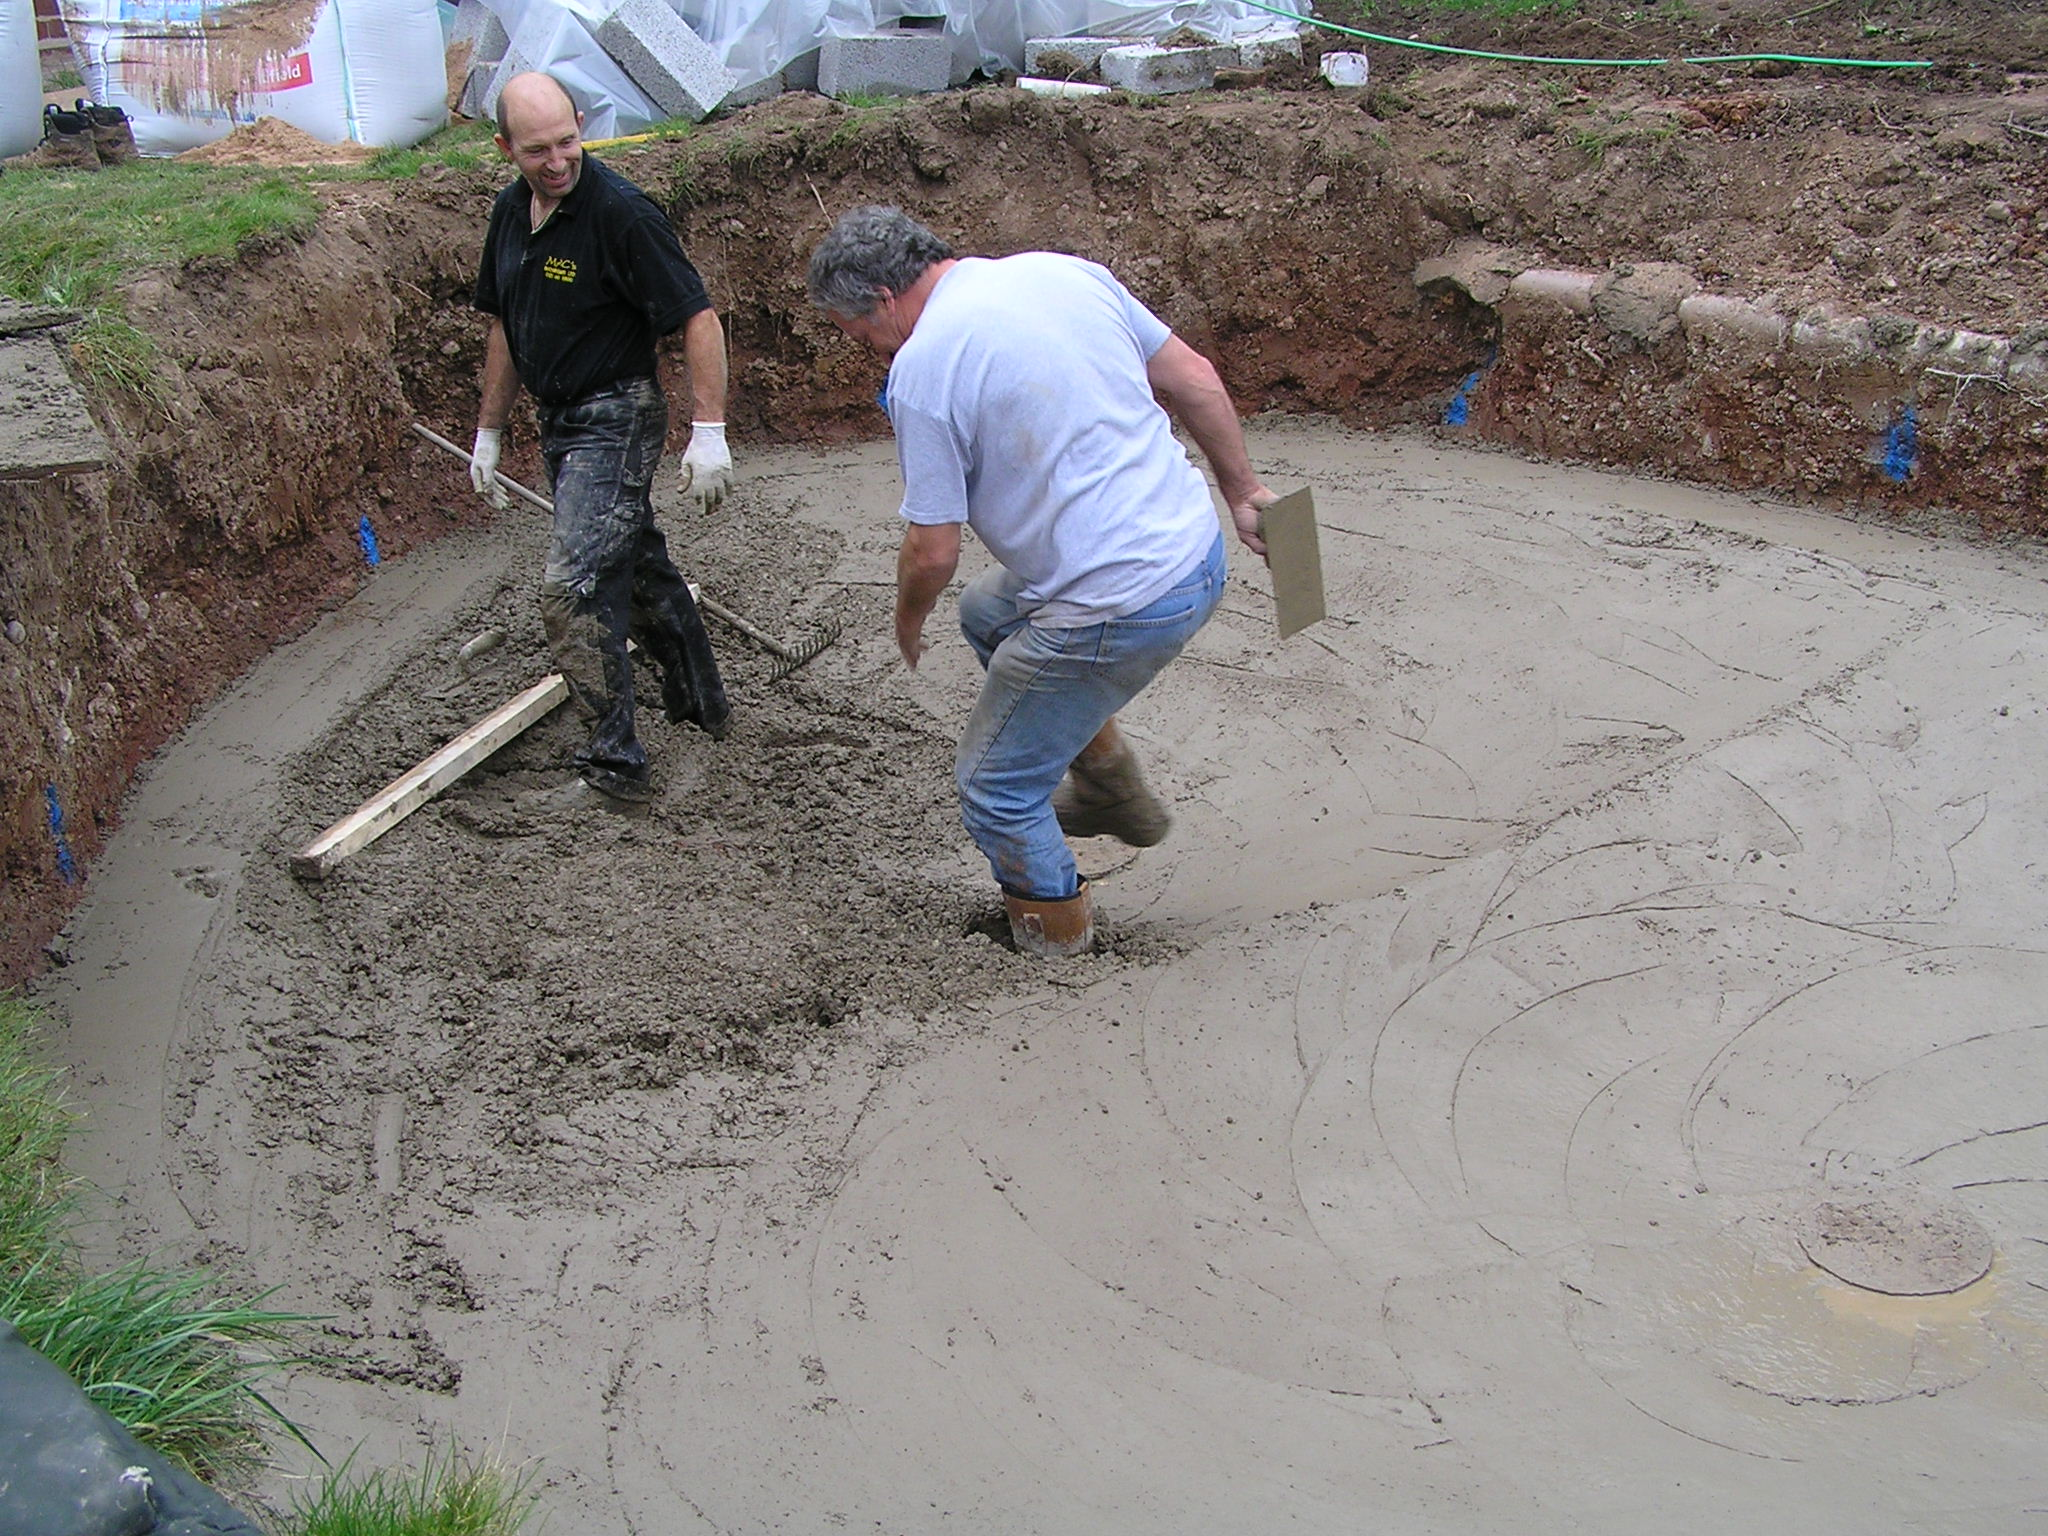 Pond digging and construction